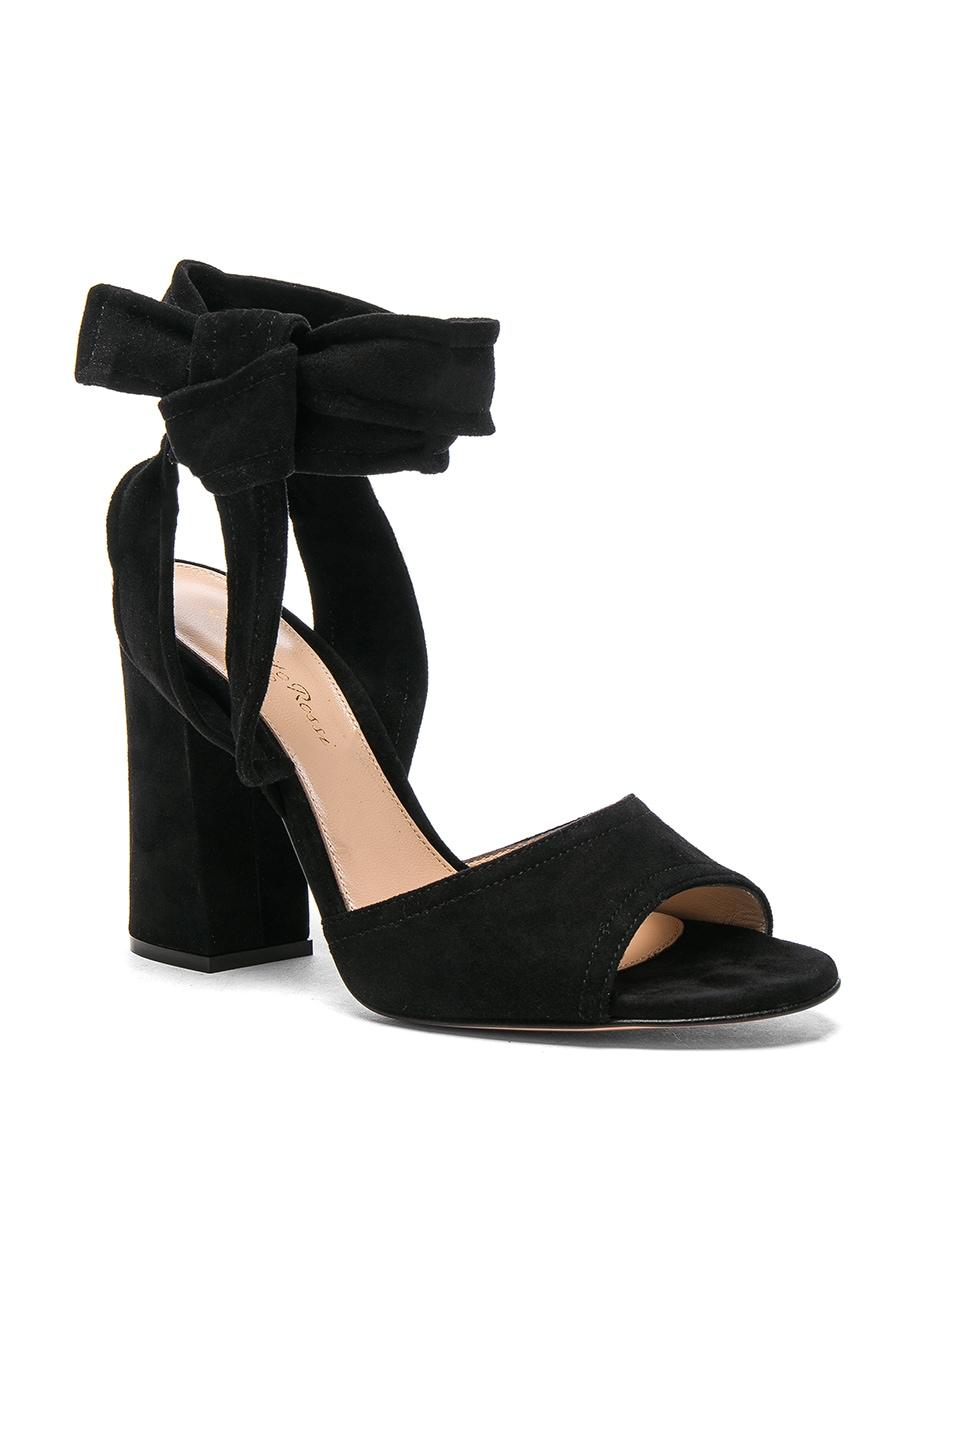 Image 2 of Gianvito Rossi Suede Ankle Tie Heels in Black